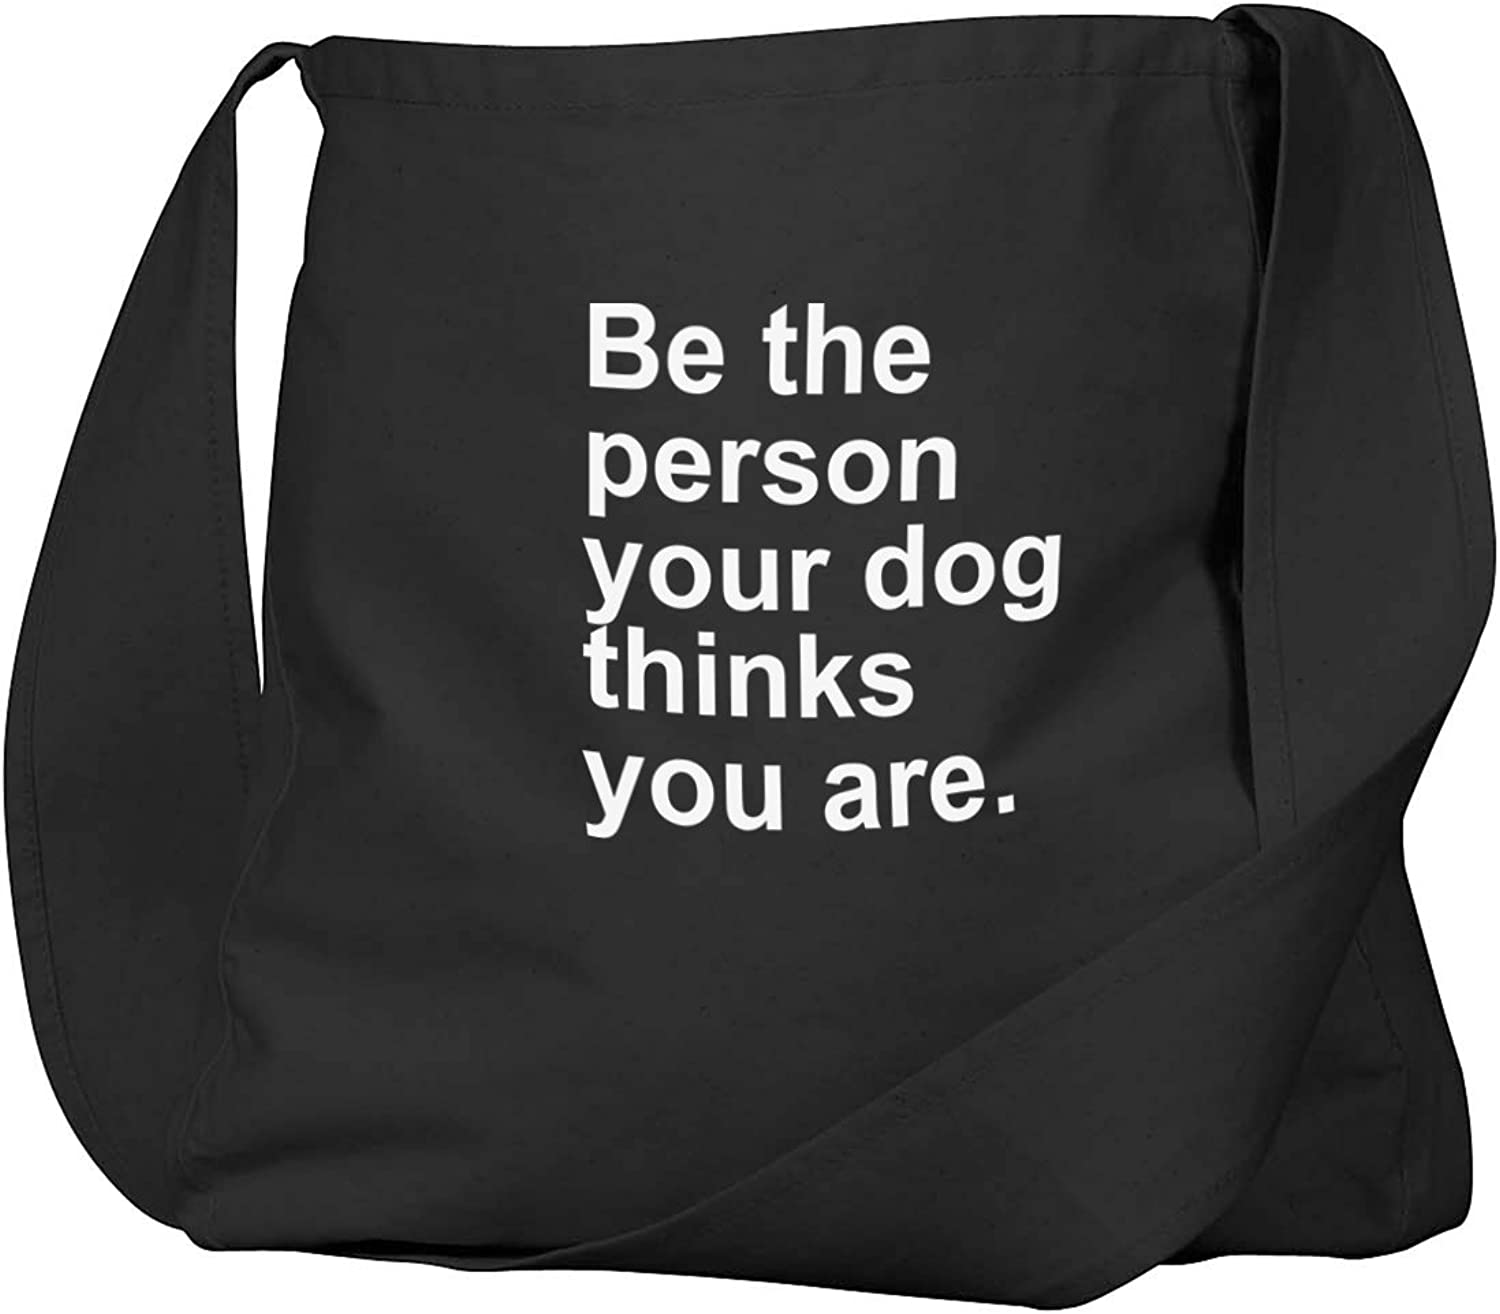 Funny Be The Person Your Dog Thinks You Are Black Canvas Satchel Bag